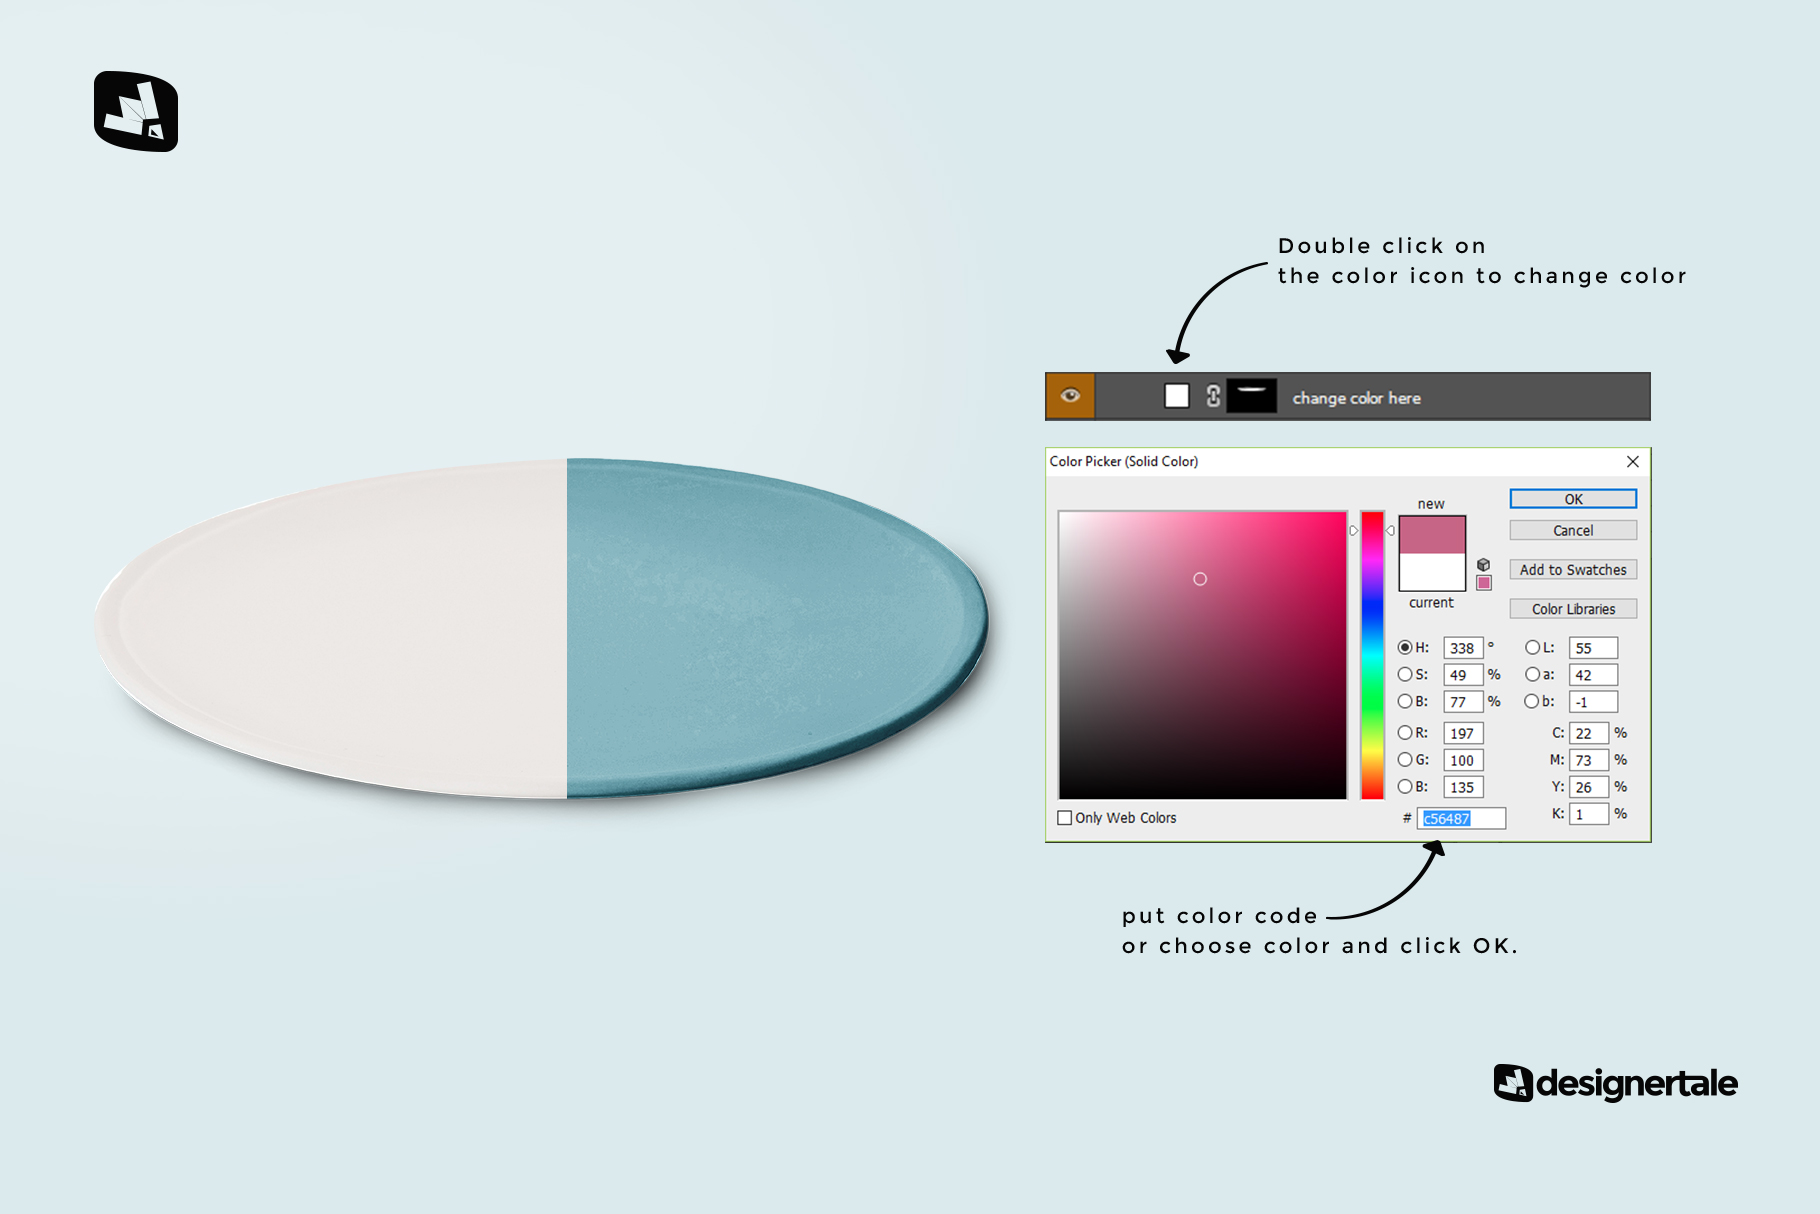 how to change the color of the single ceramic dinner plate mockup